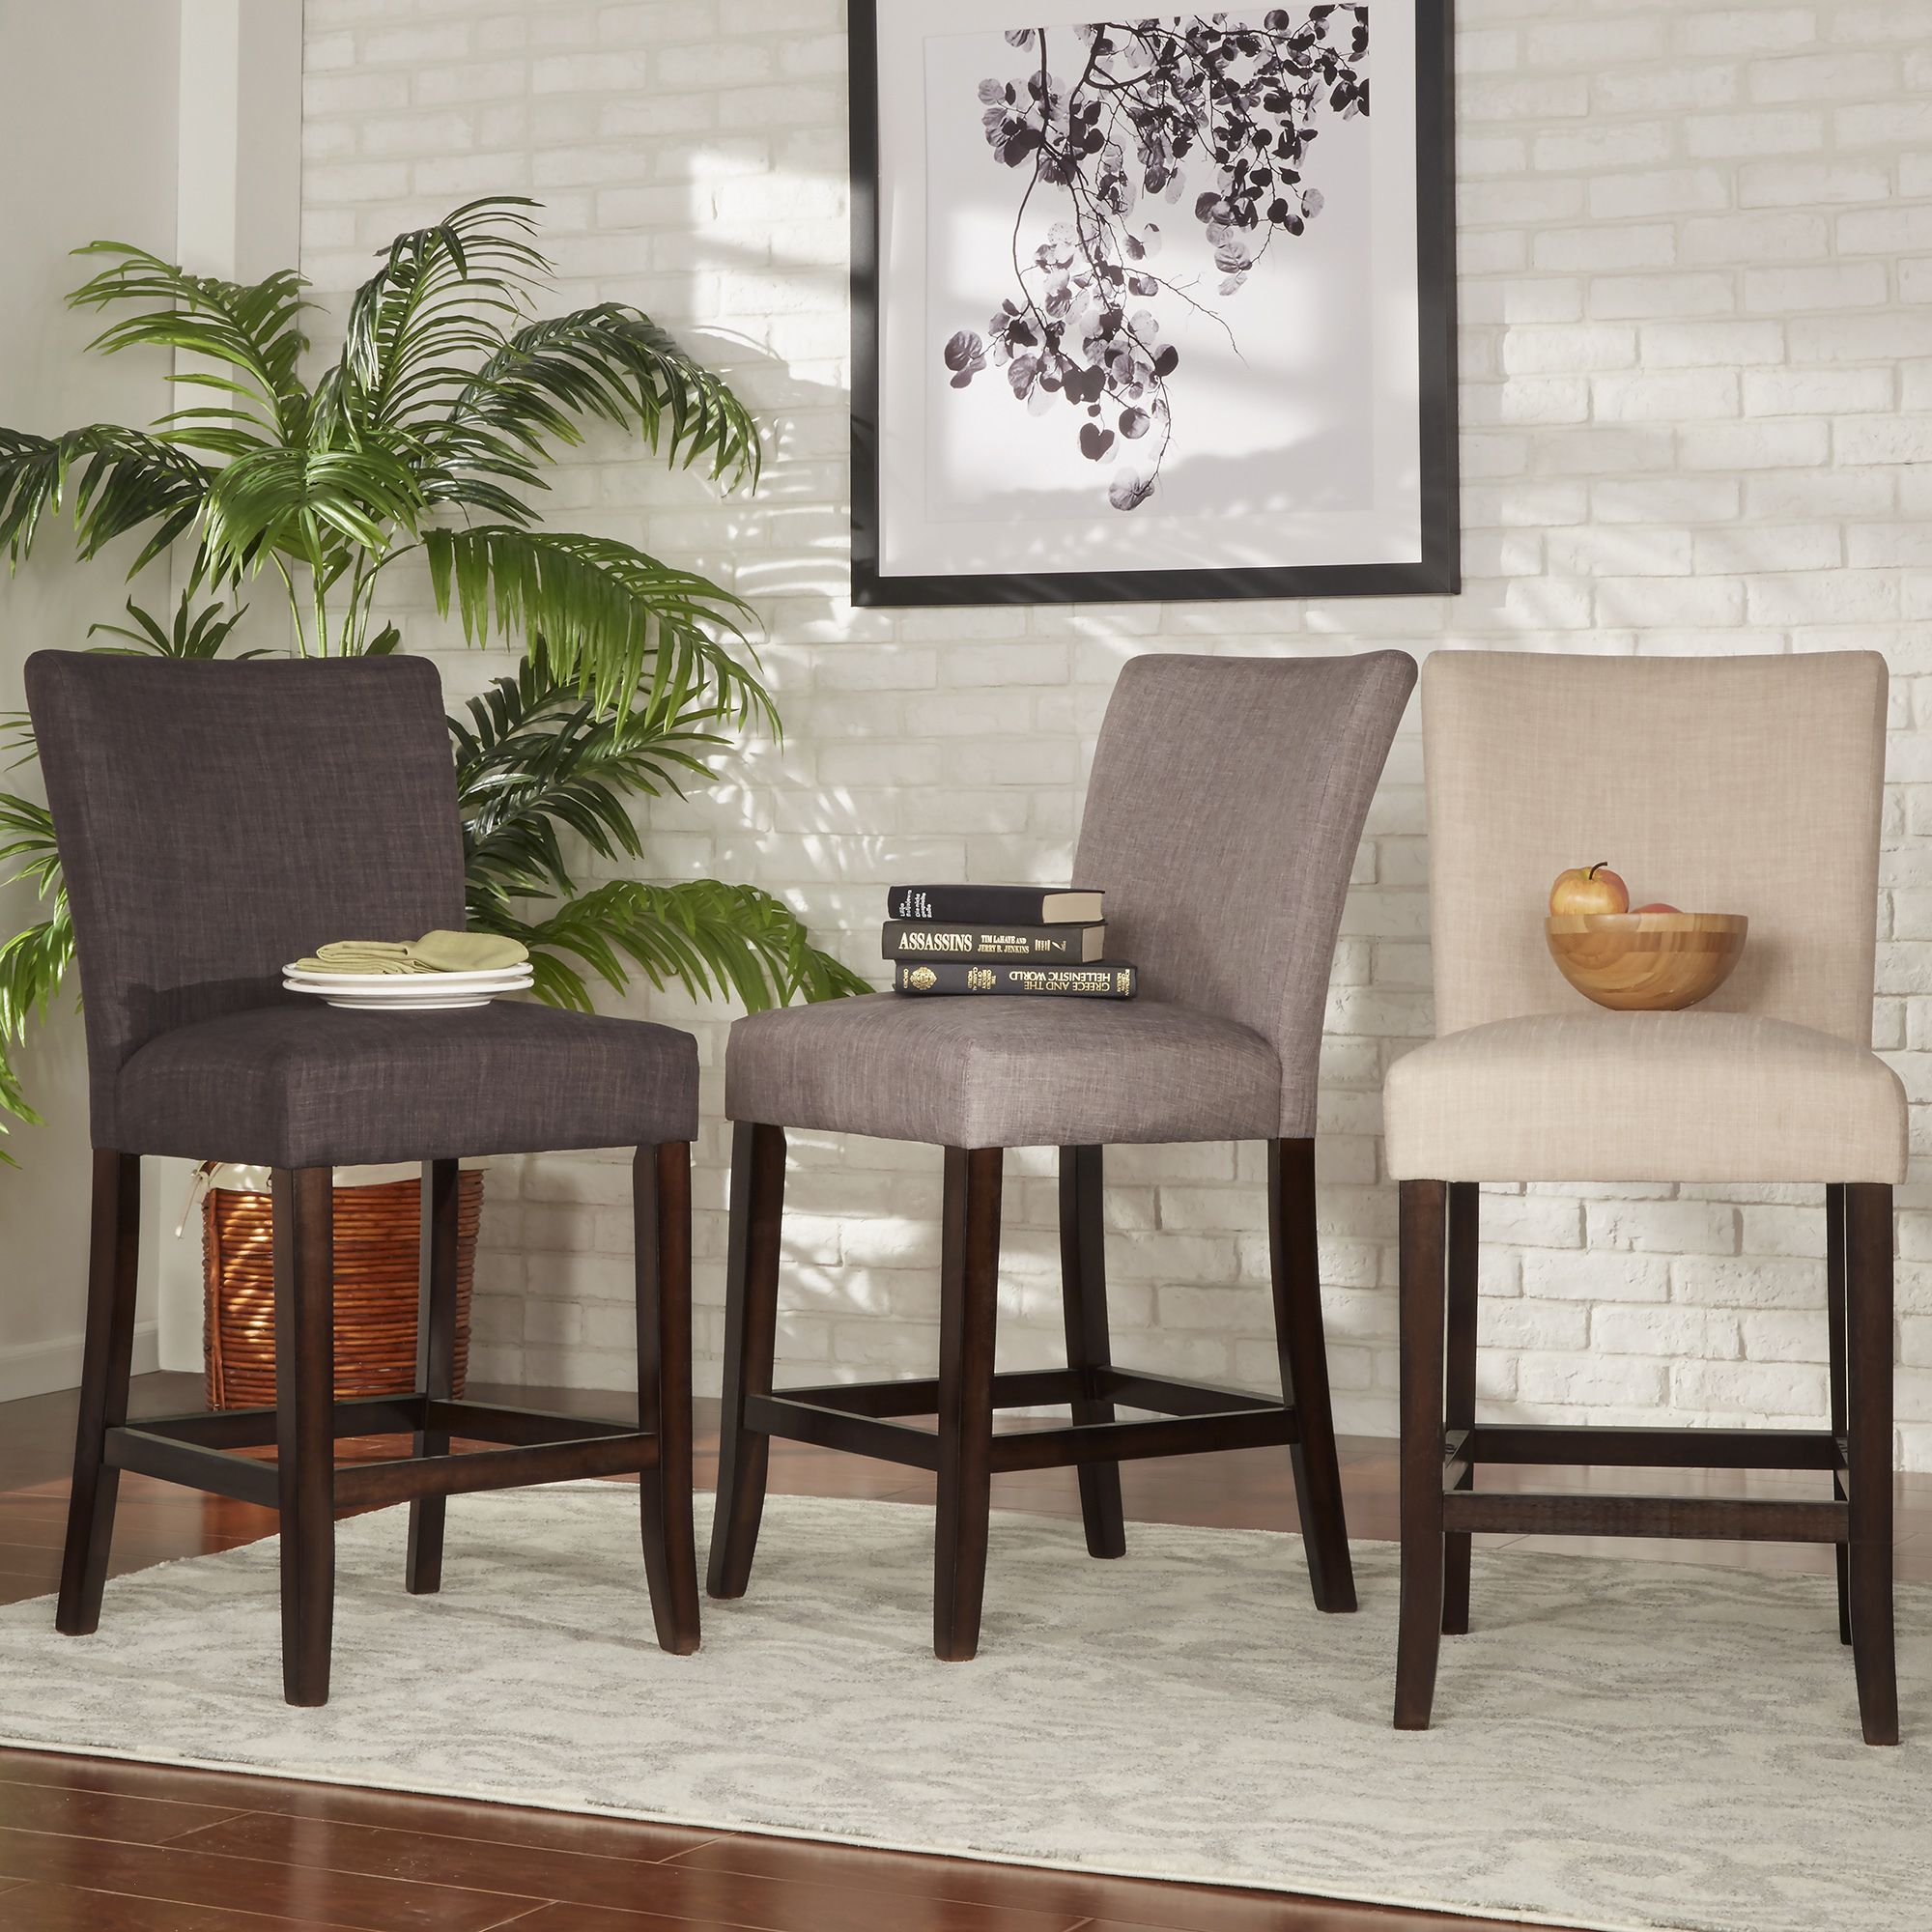 Update The Look Of Your Dining Set With This Two Tribeca Home Counter Height Chairs Featuring Linen Upholstery And Spring Cushion Seats On Solid